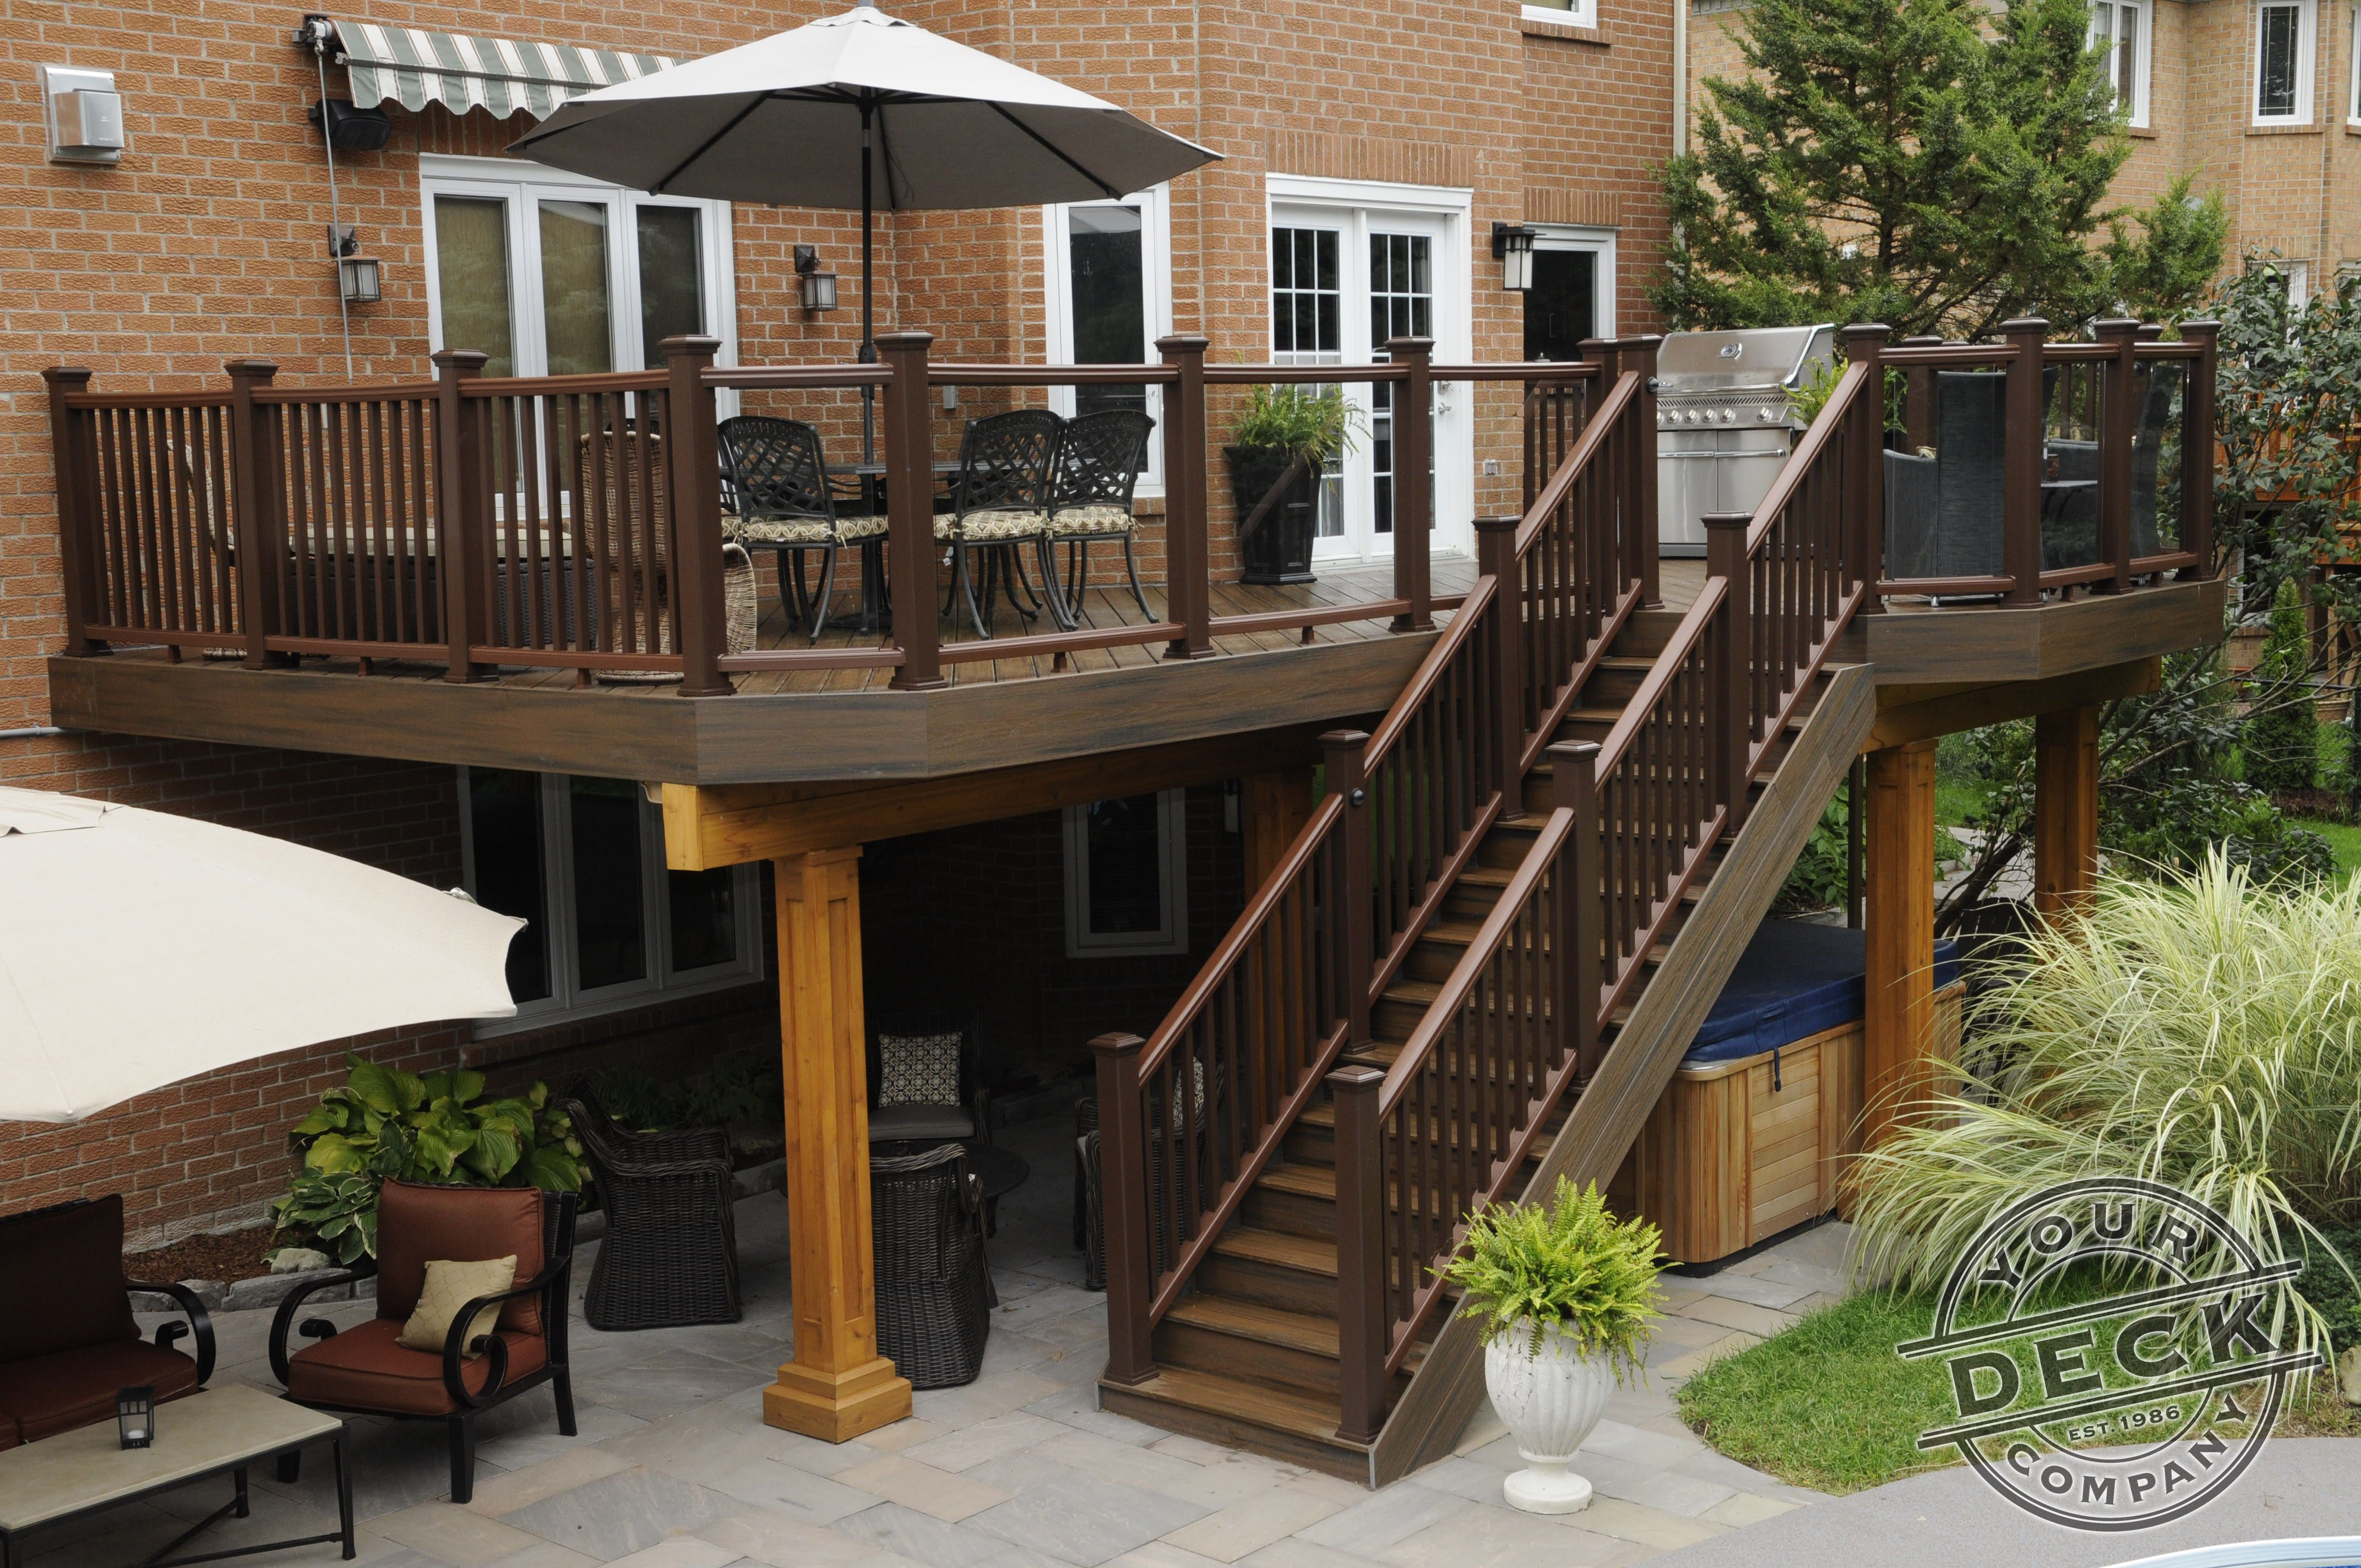 Using Trex decking railing and lighting The area under the deck